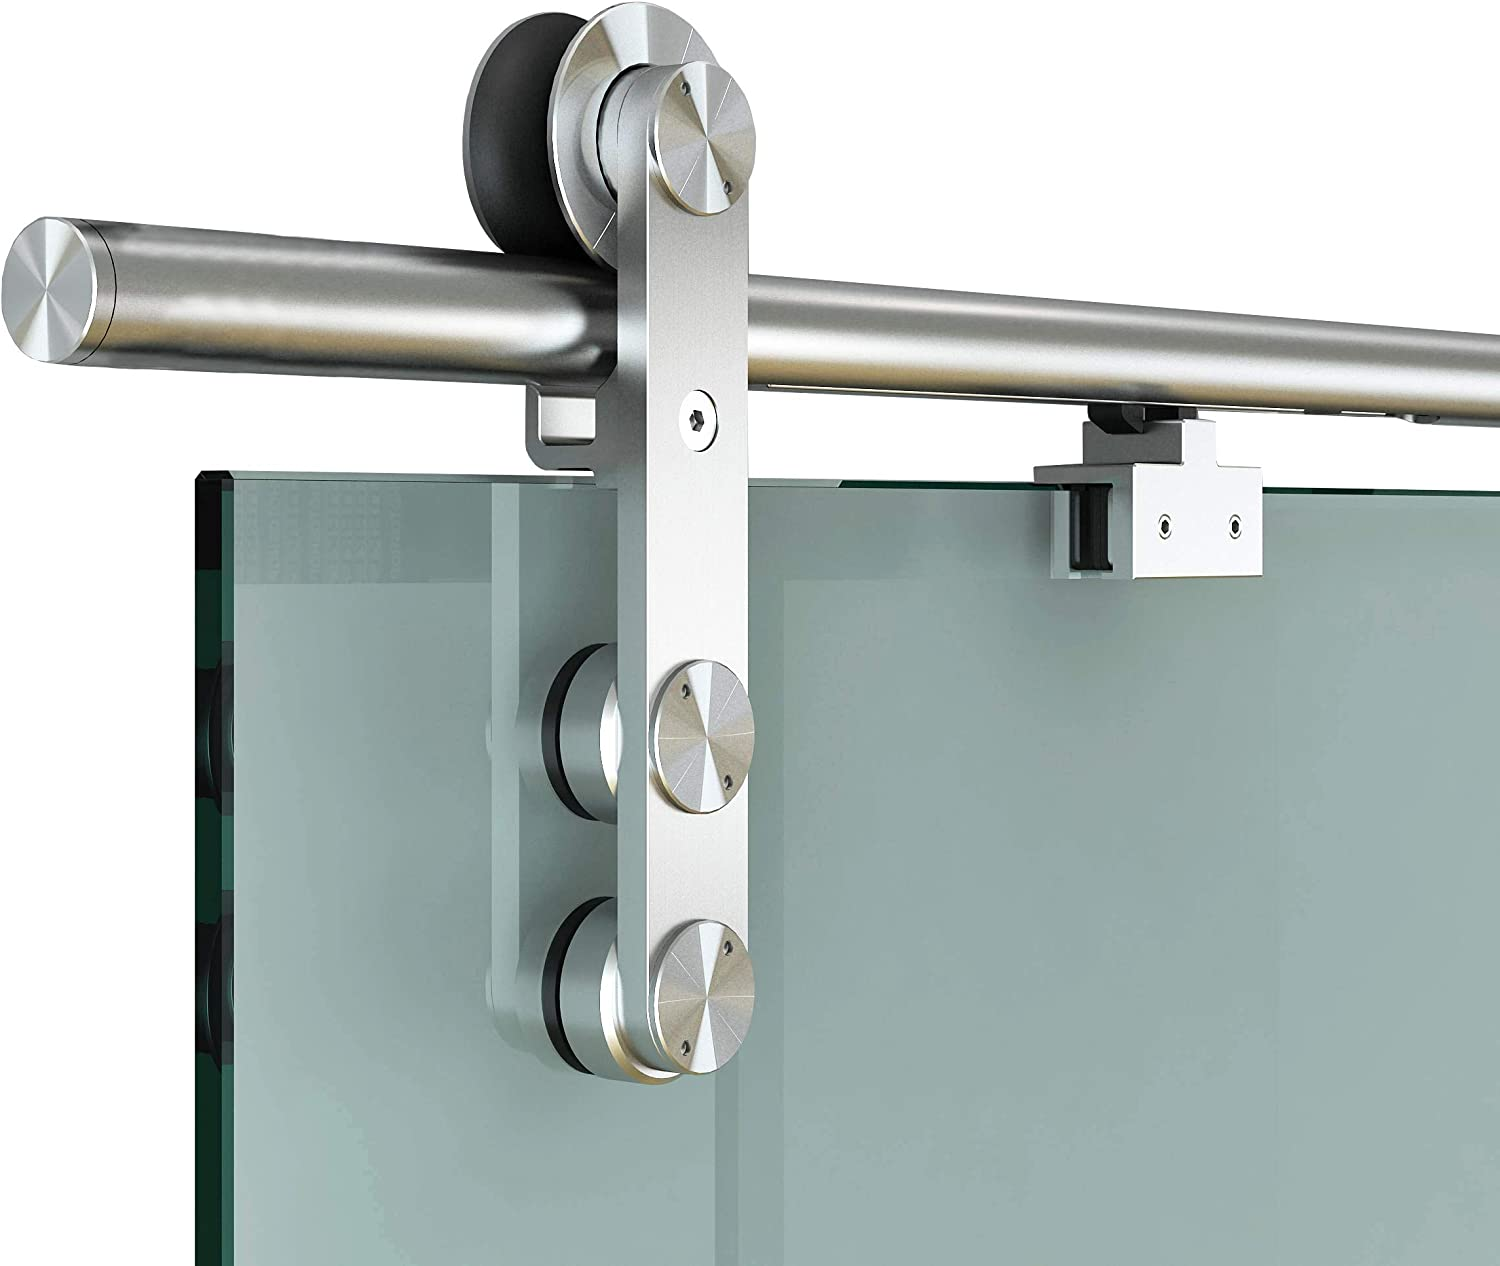 DIYHD 6FT Soft Close Glass Barn Door Hardware Stainless Steel Two Sides Soft Close Mechanism Office Glass Sliding Door Track with One Side Glass Handle